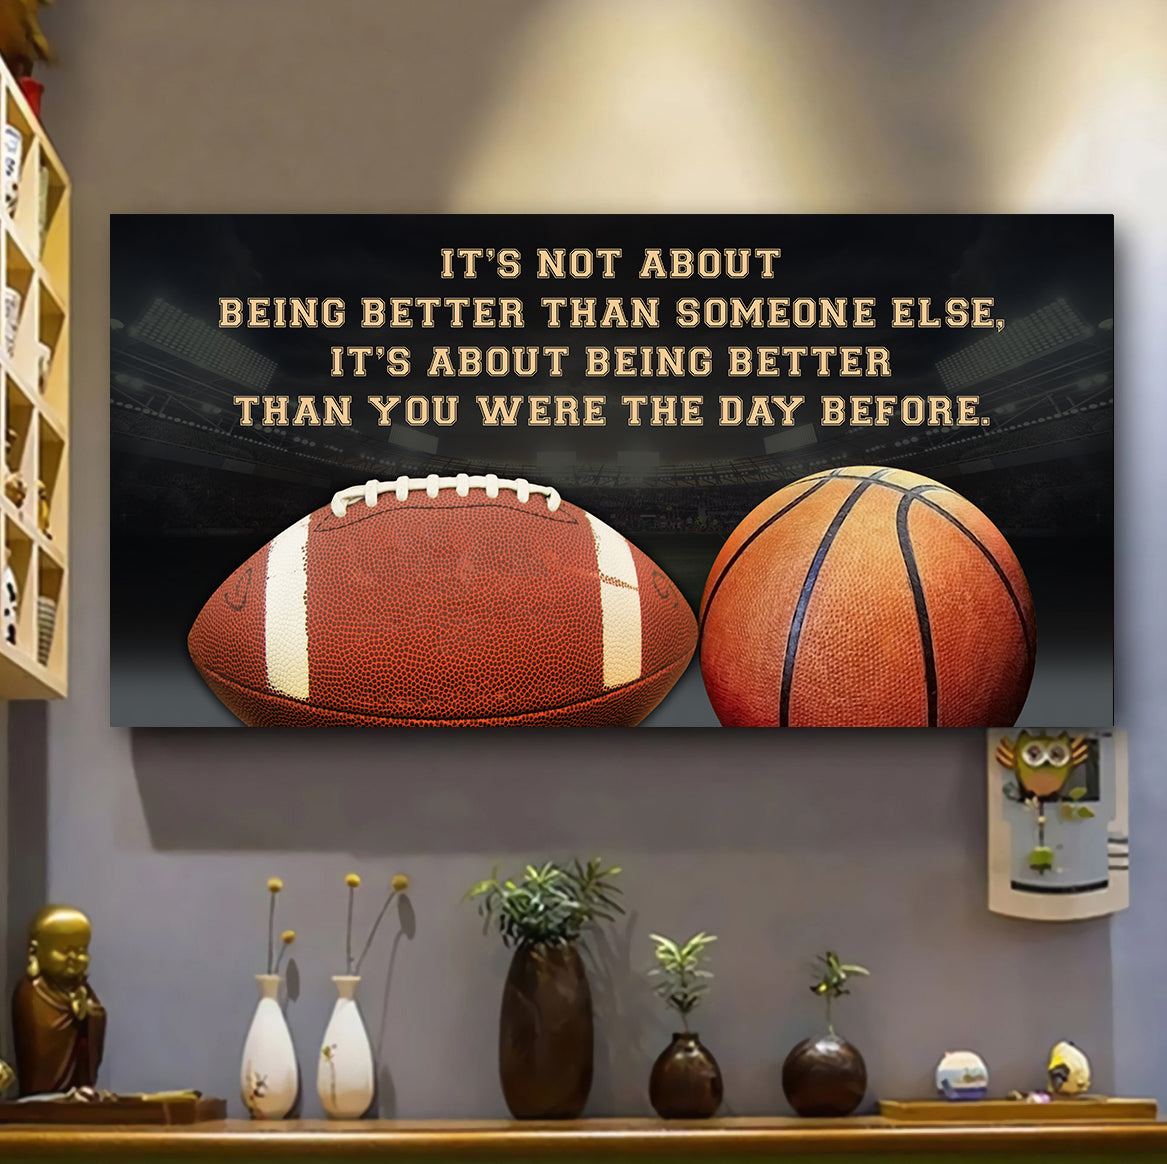 QH678) CUSTOMIZABLE FOOTBALL AND BASKETBALL POSTER, CANVAS- IT'S NOT ABOUT - FREE SHIPPING ON ORDERS OVER 75$